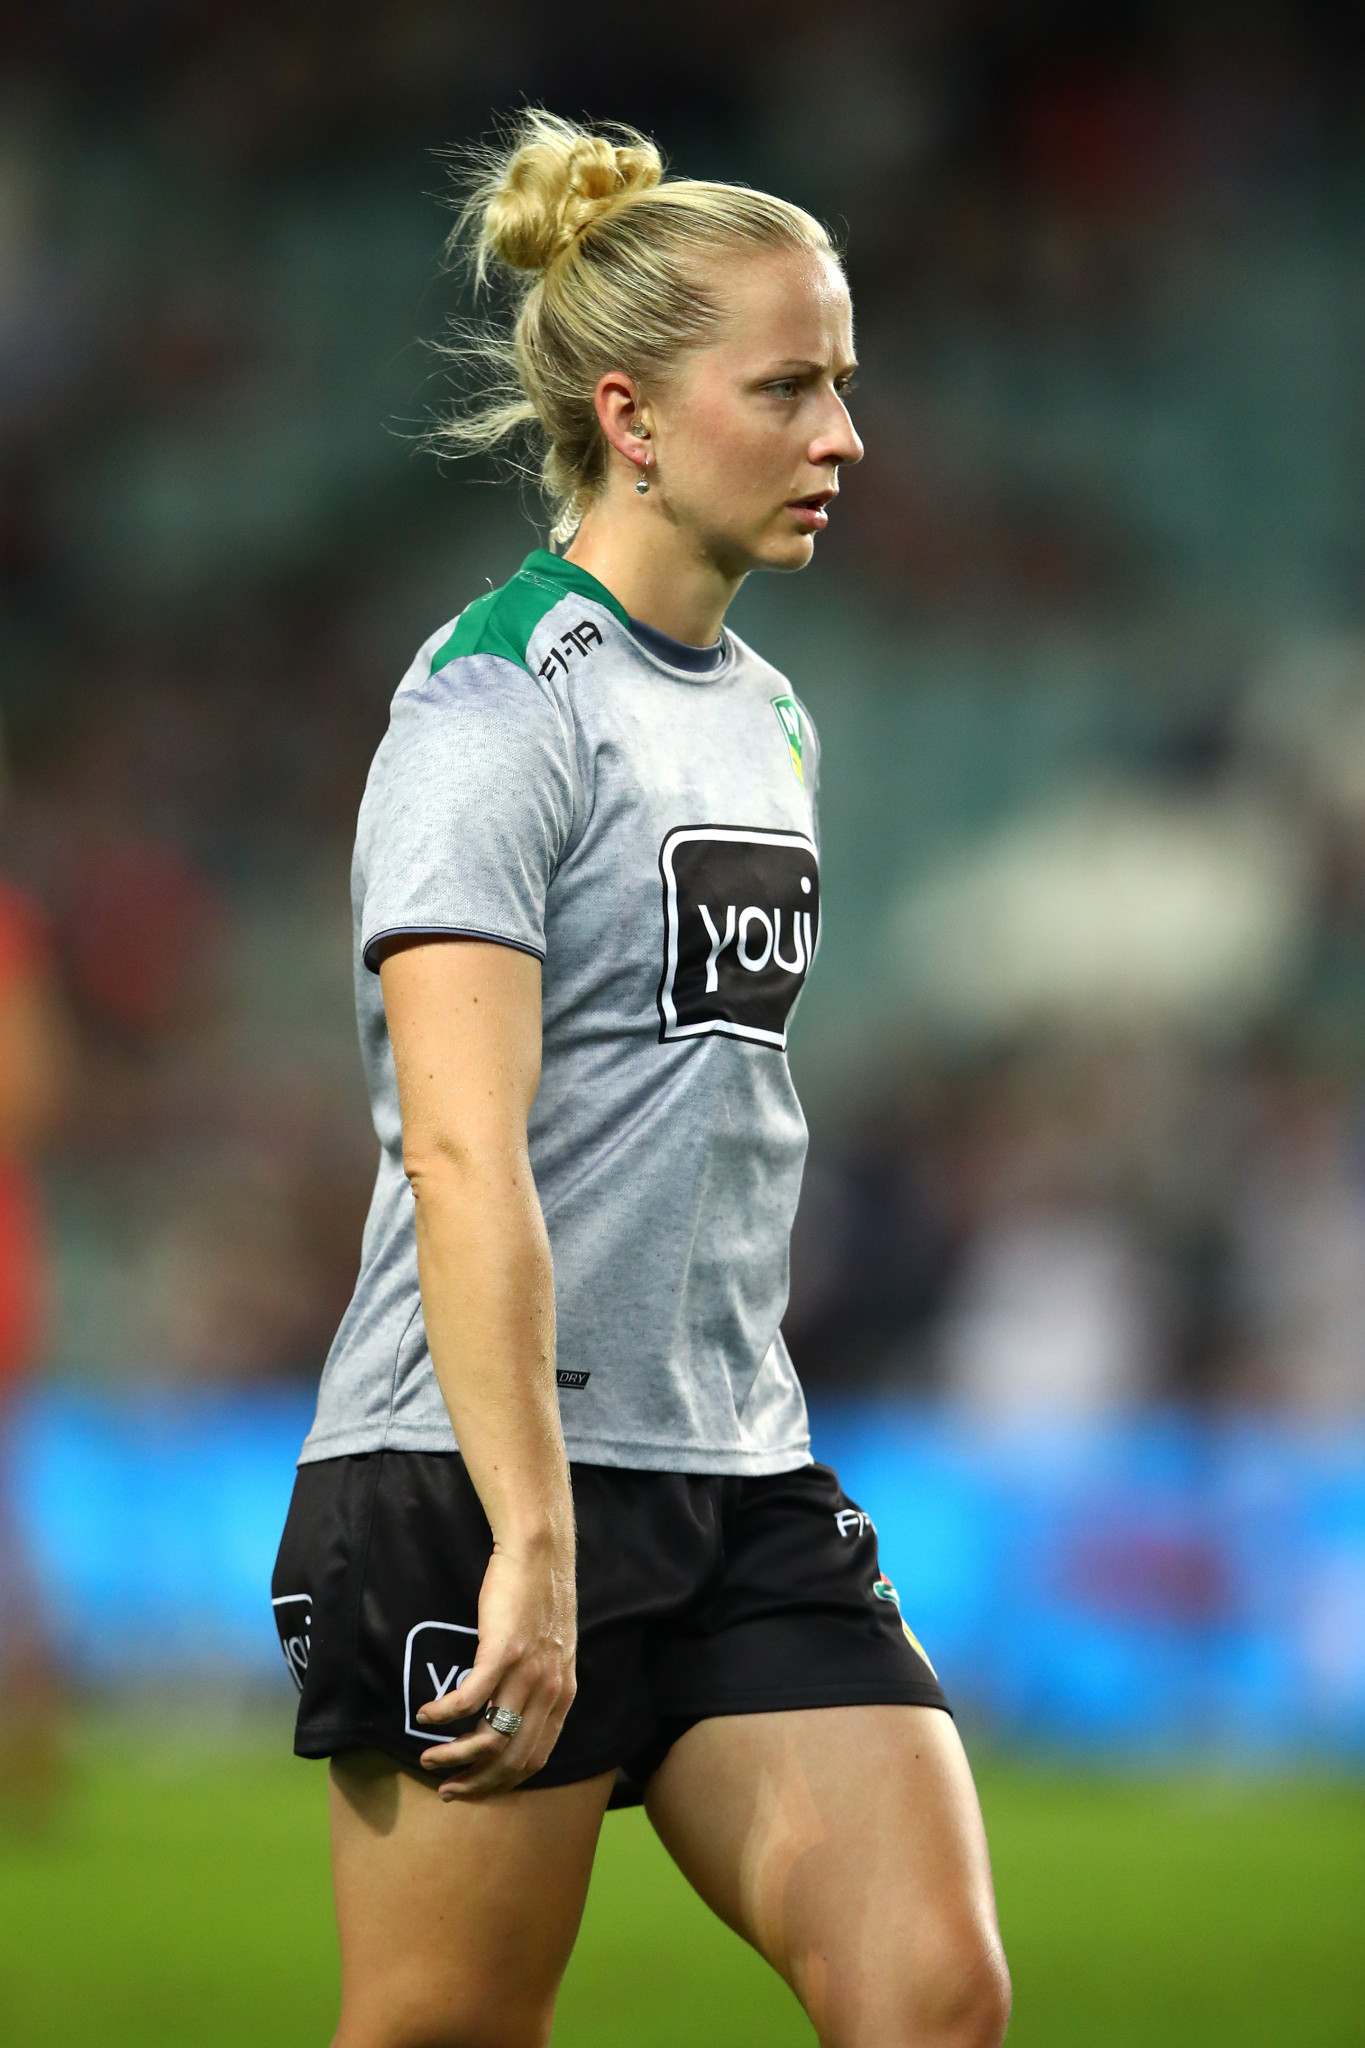 Belinda Sleeman, who will be the first woman ever to officiate at a Rugby League World Cup ©Getty Images